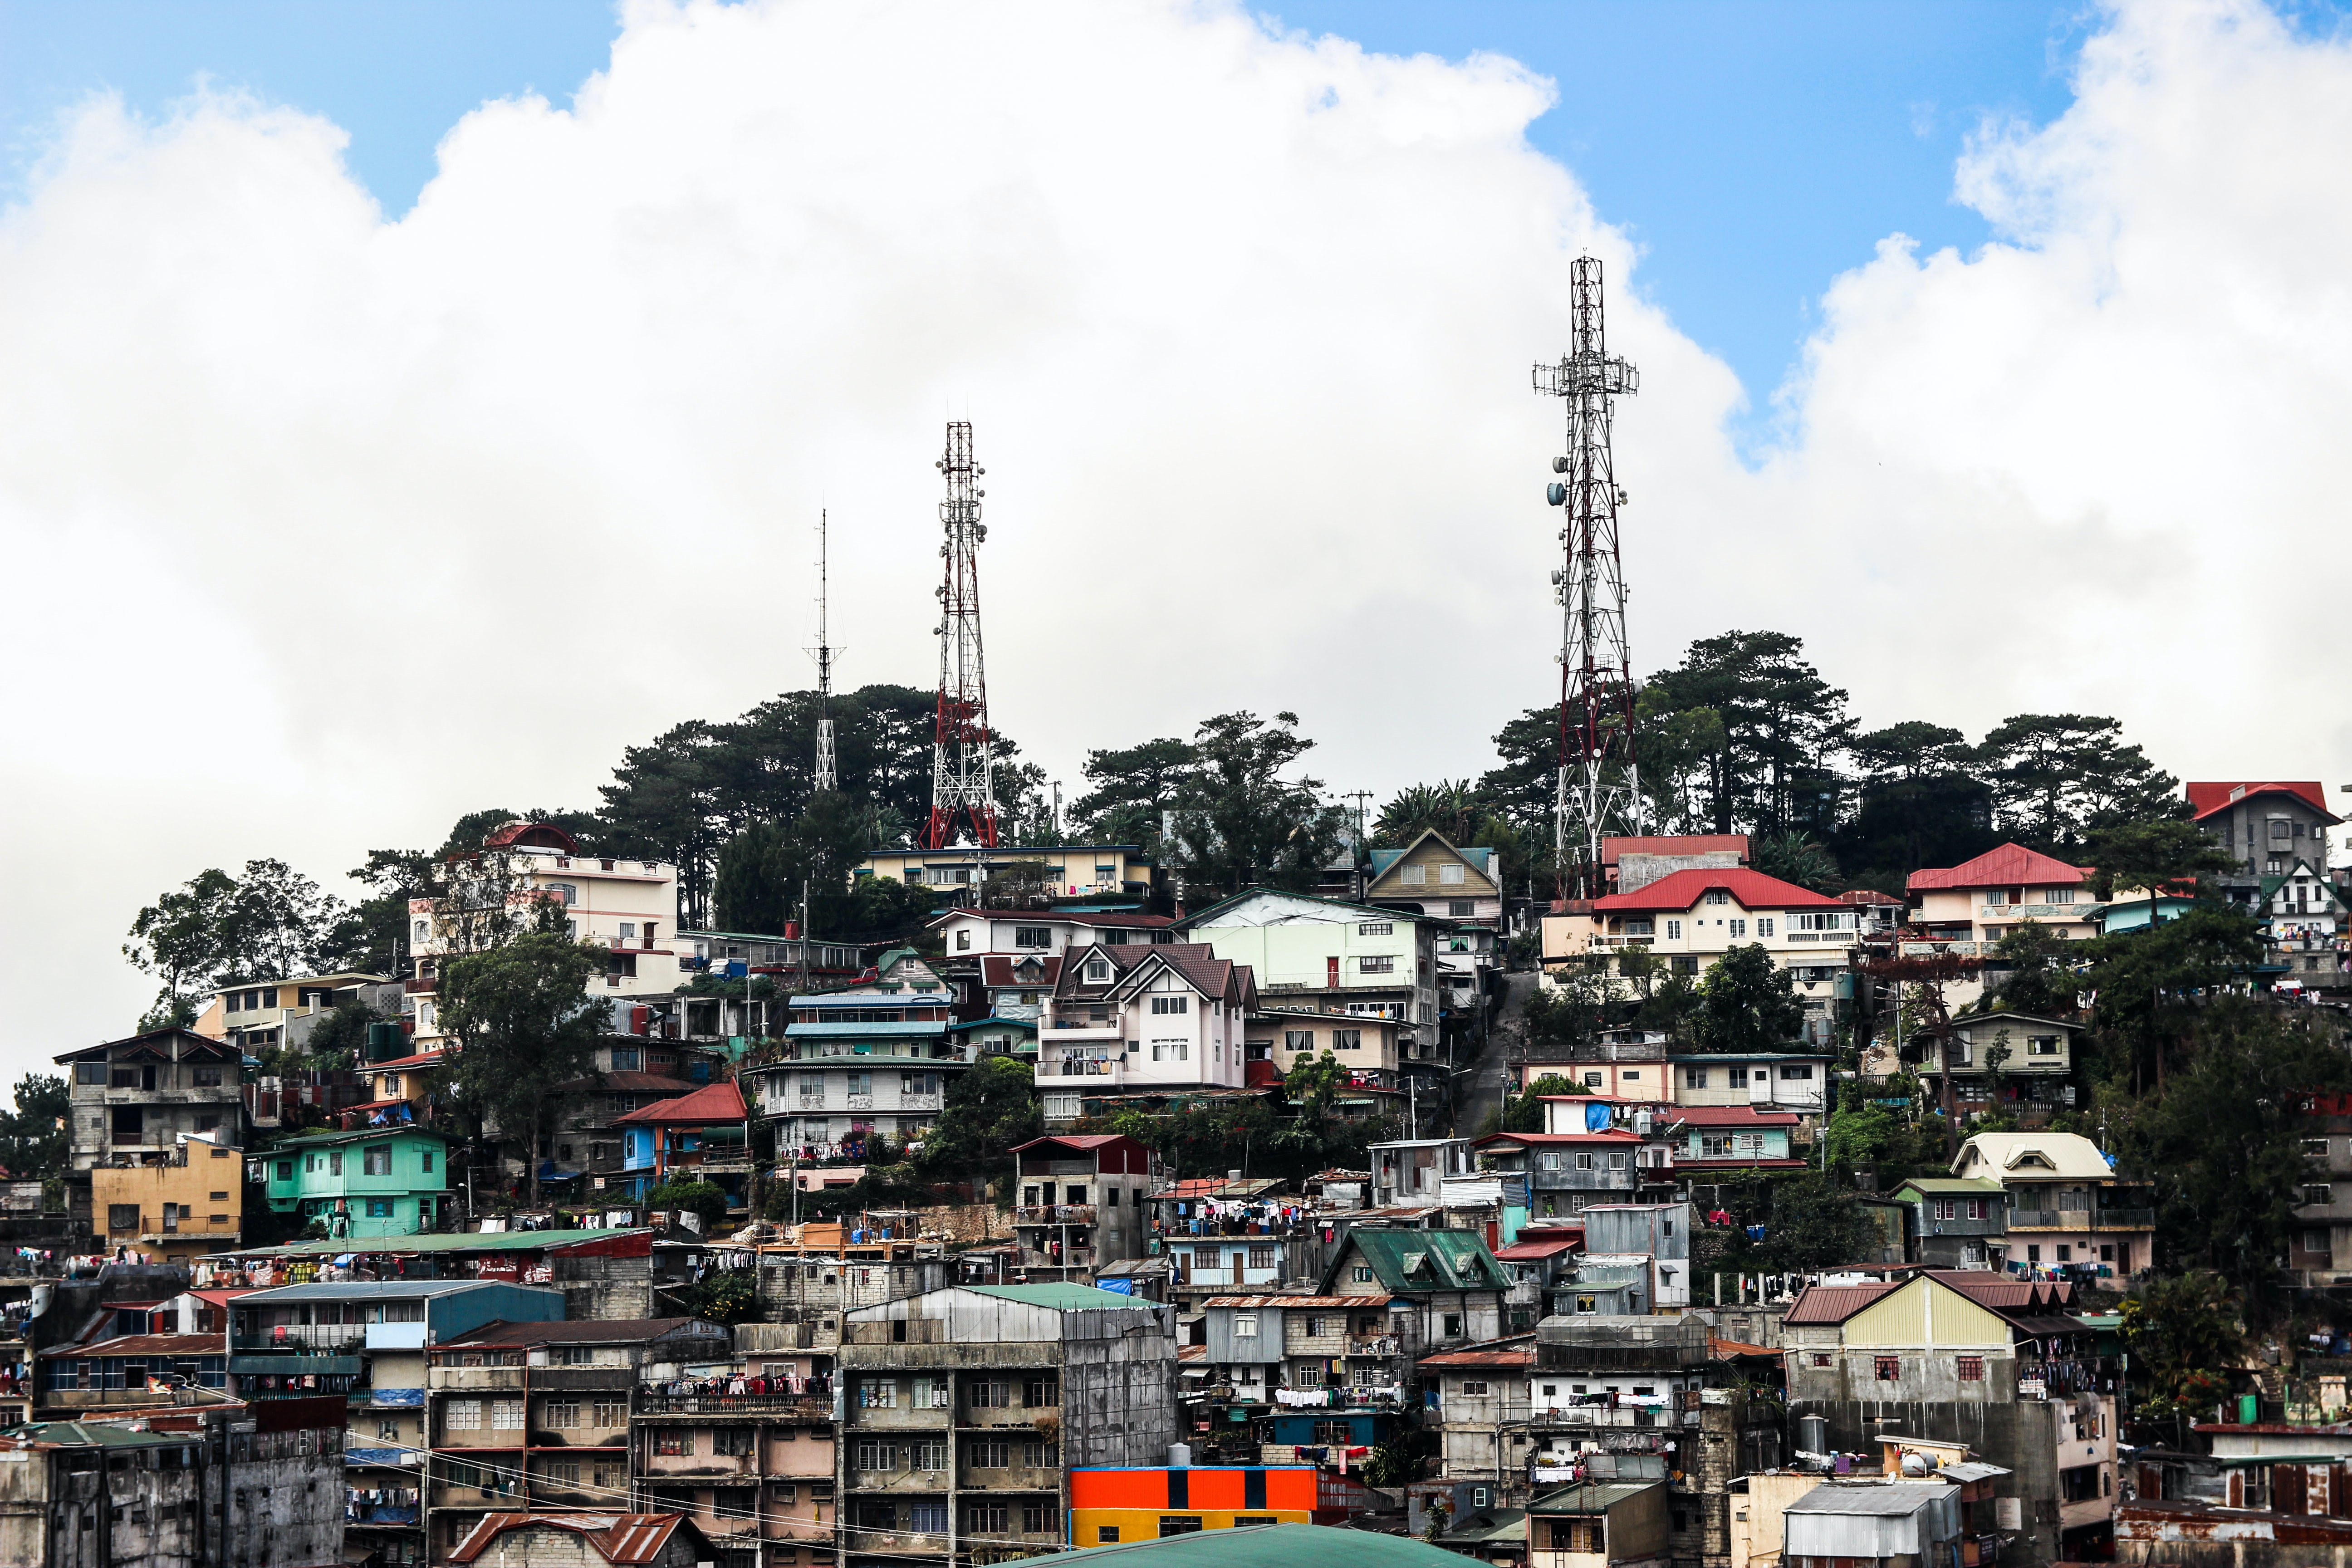 Baguio City in the Philippines